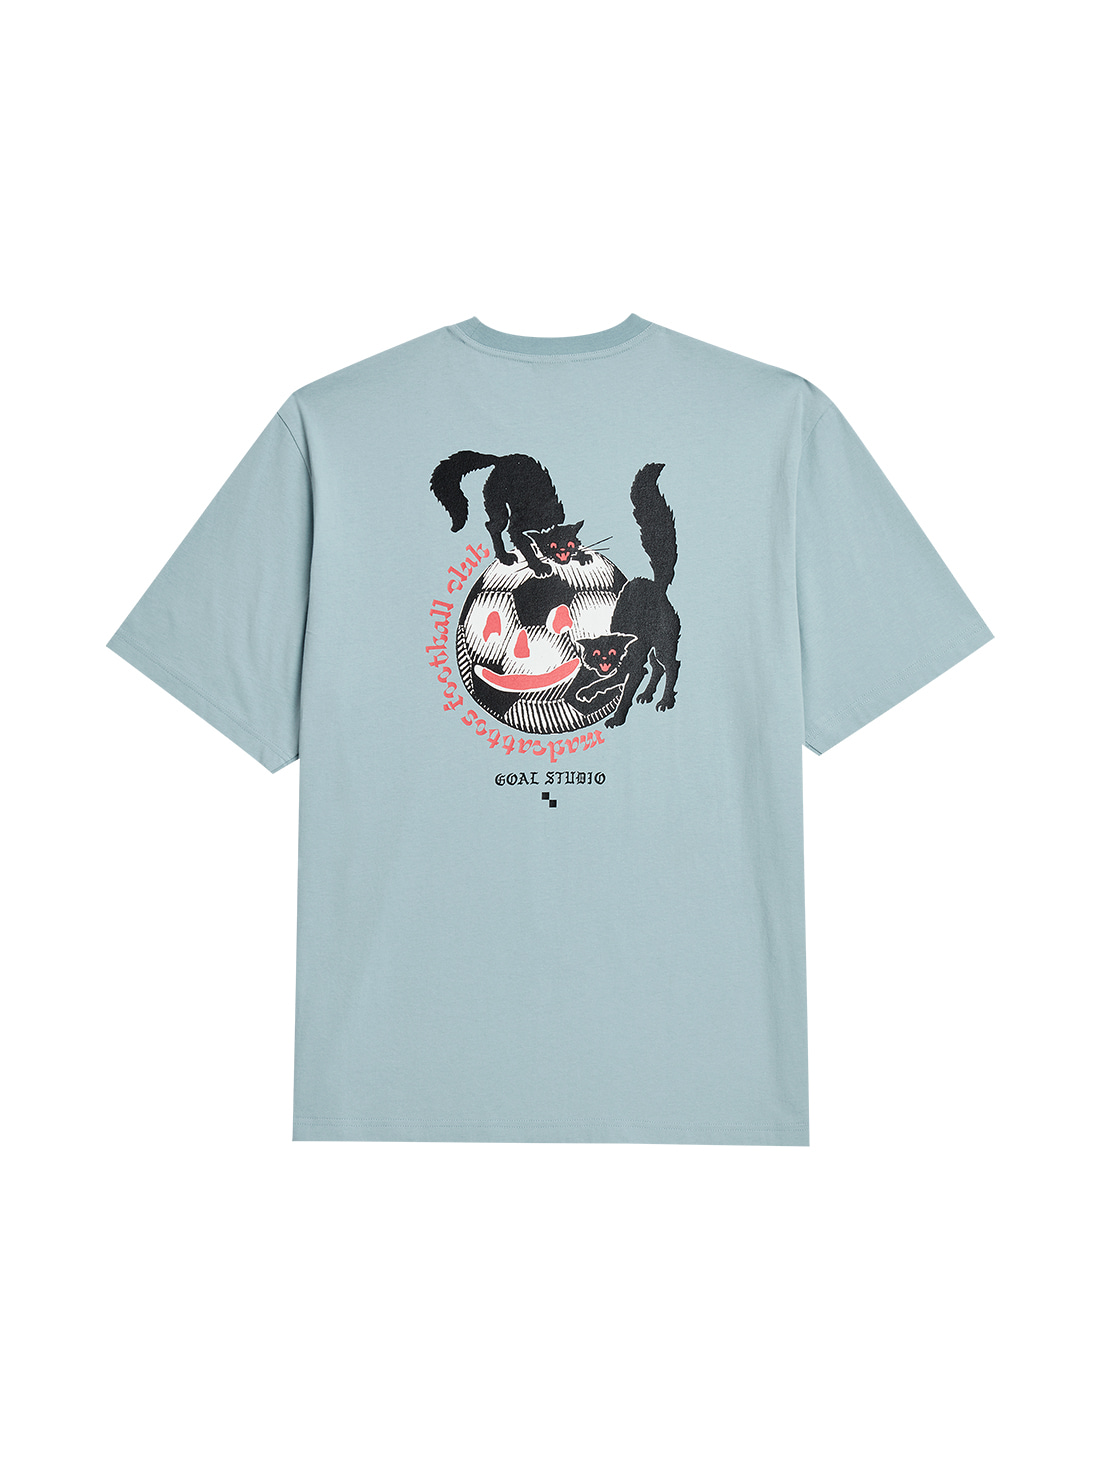 GOALSTUDIO MC BALL GRAPHIC TEE - LIGHT BLUE